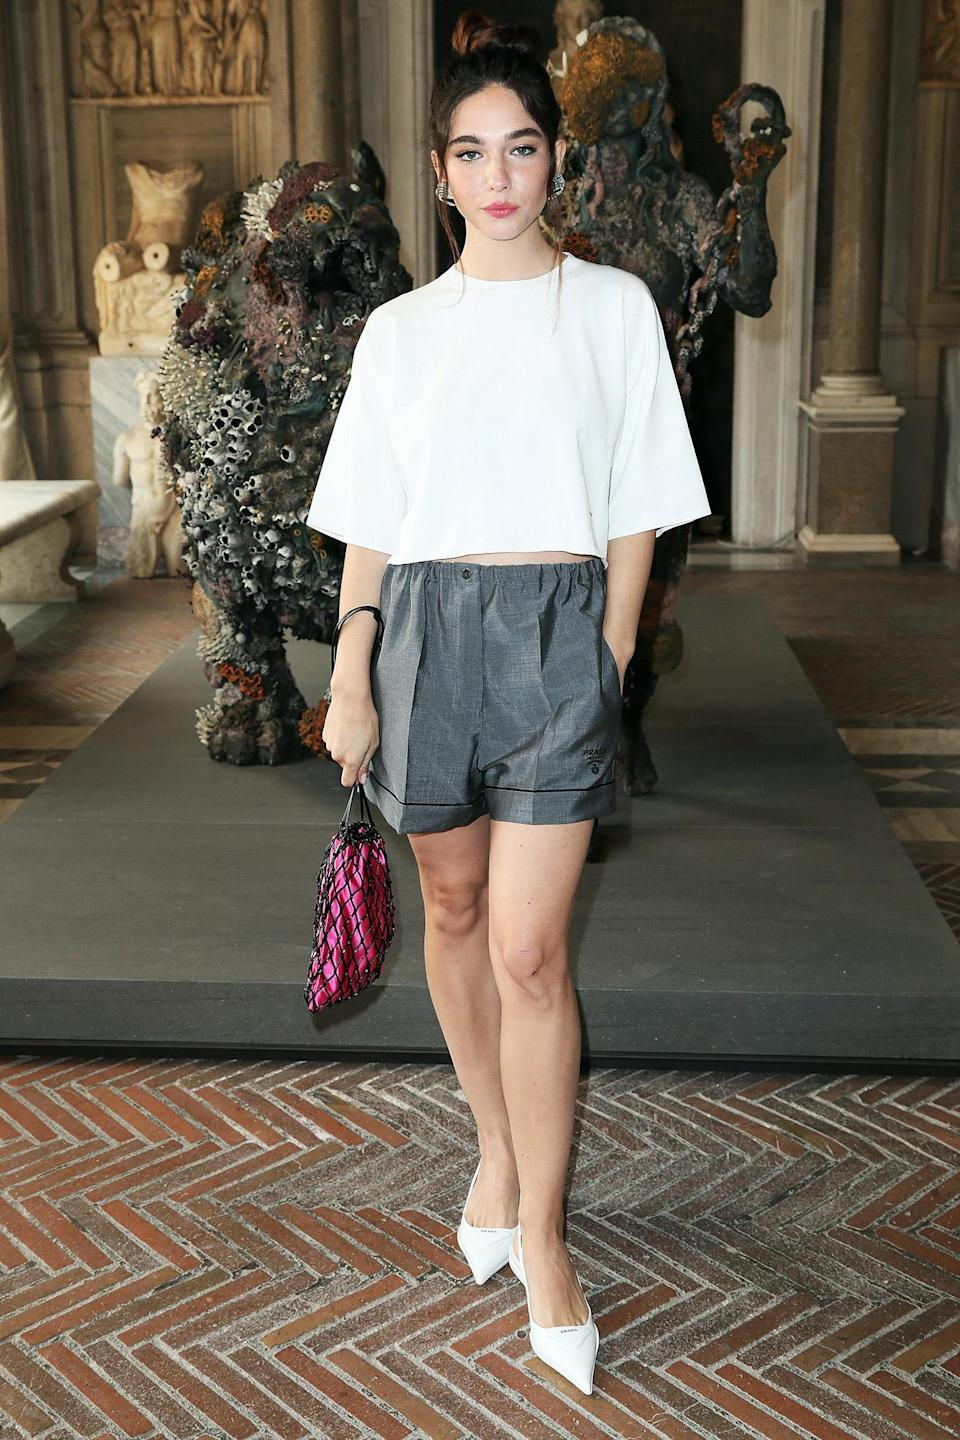 <p>Matilda De Angelis attends the Damien Hirst Archaeology now exhibition, sponsored by Prada, at Galleria Borghese on June 7 in Rome.</p>